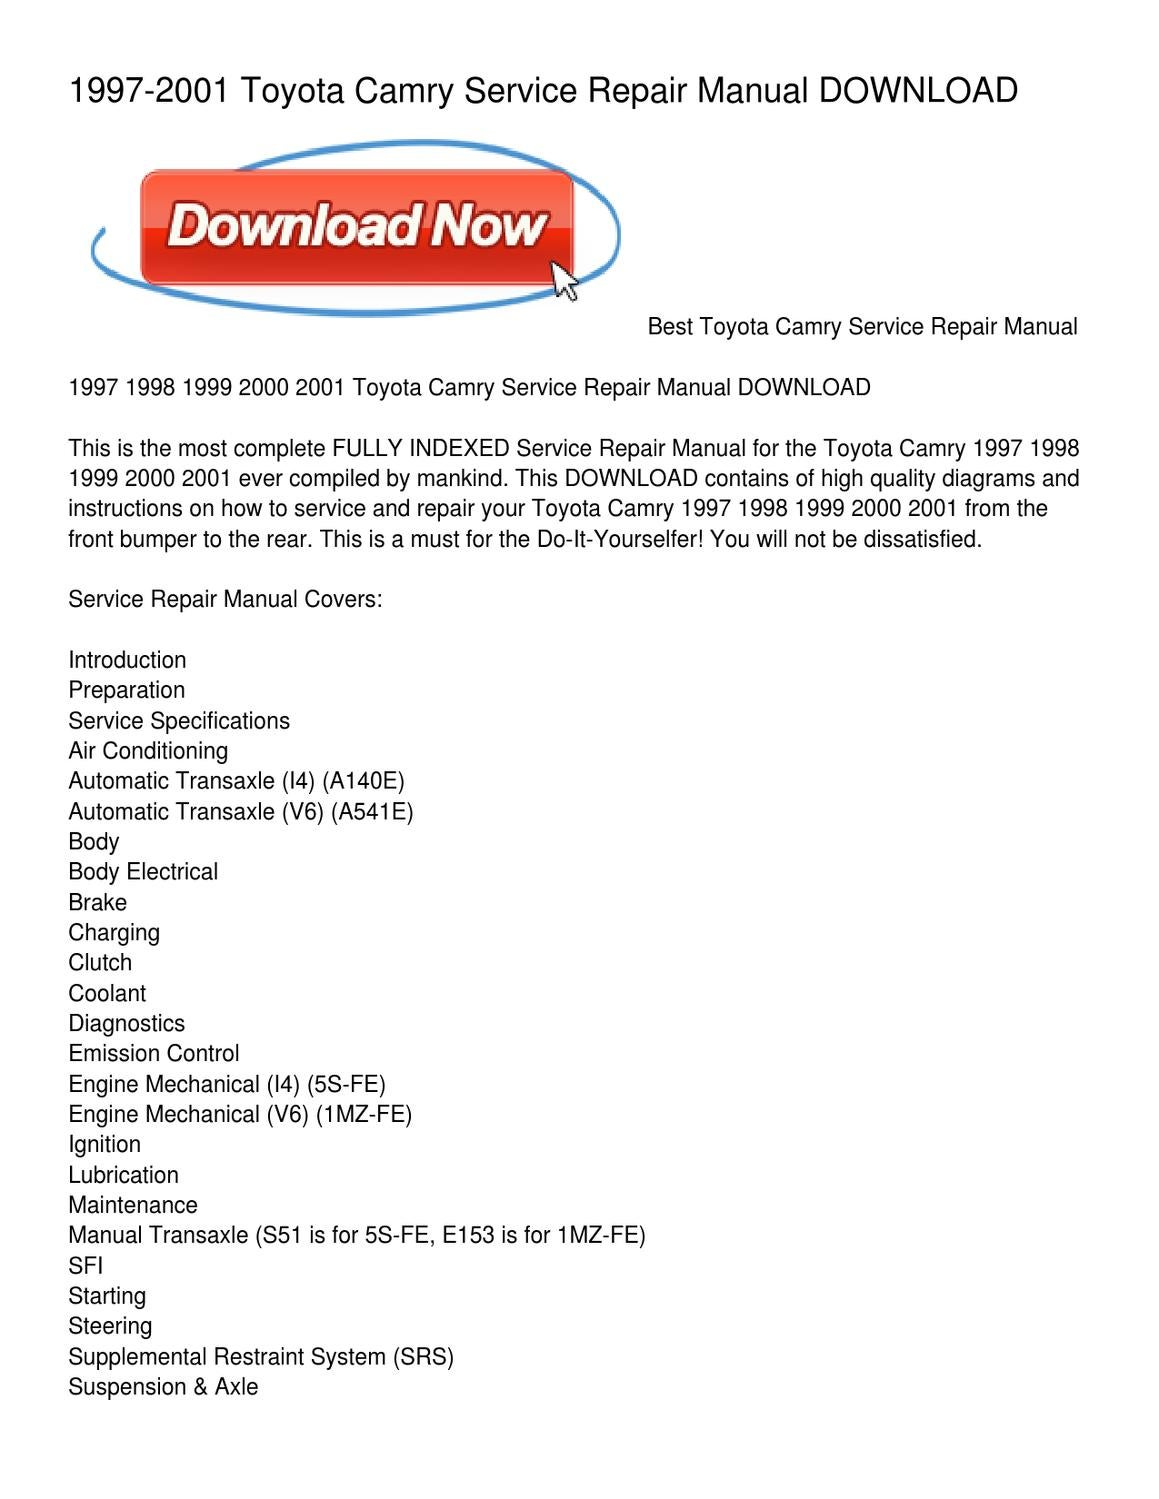 1997 2001 toyota camry service repair manual download by jacquline rh issuu com Service Repair Manuals Online Service Repair Manuals Online